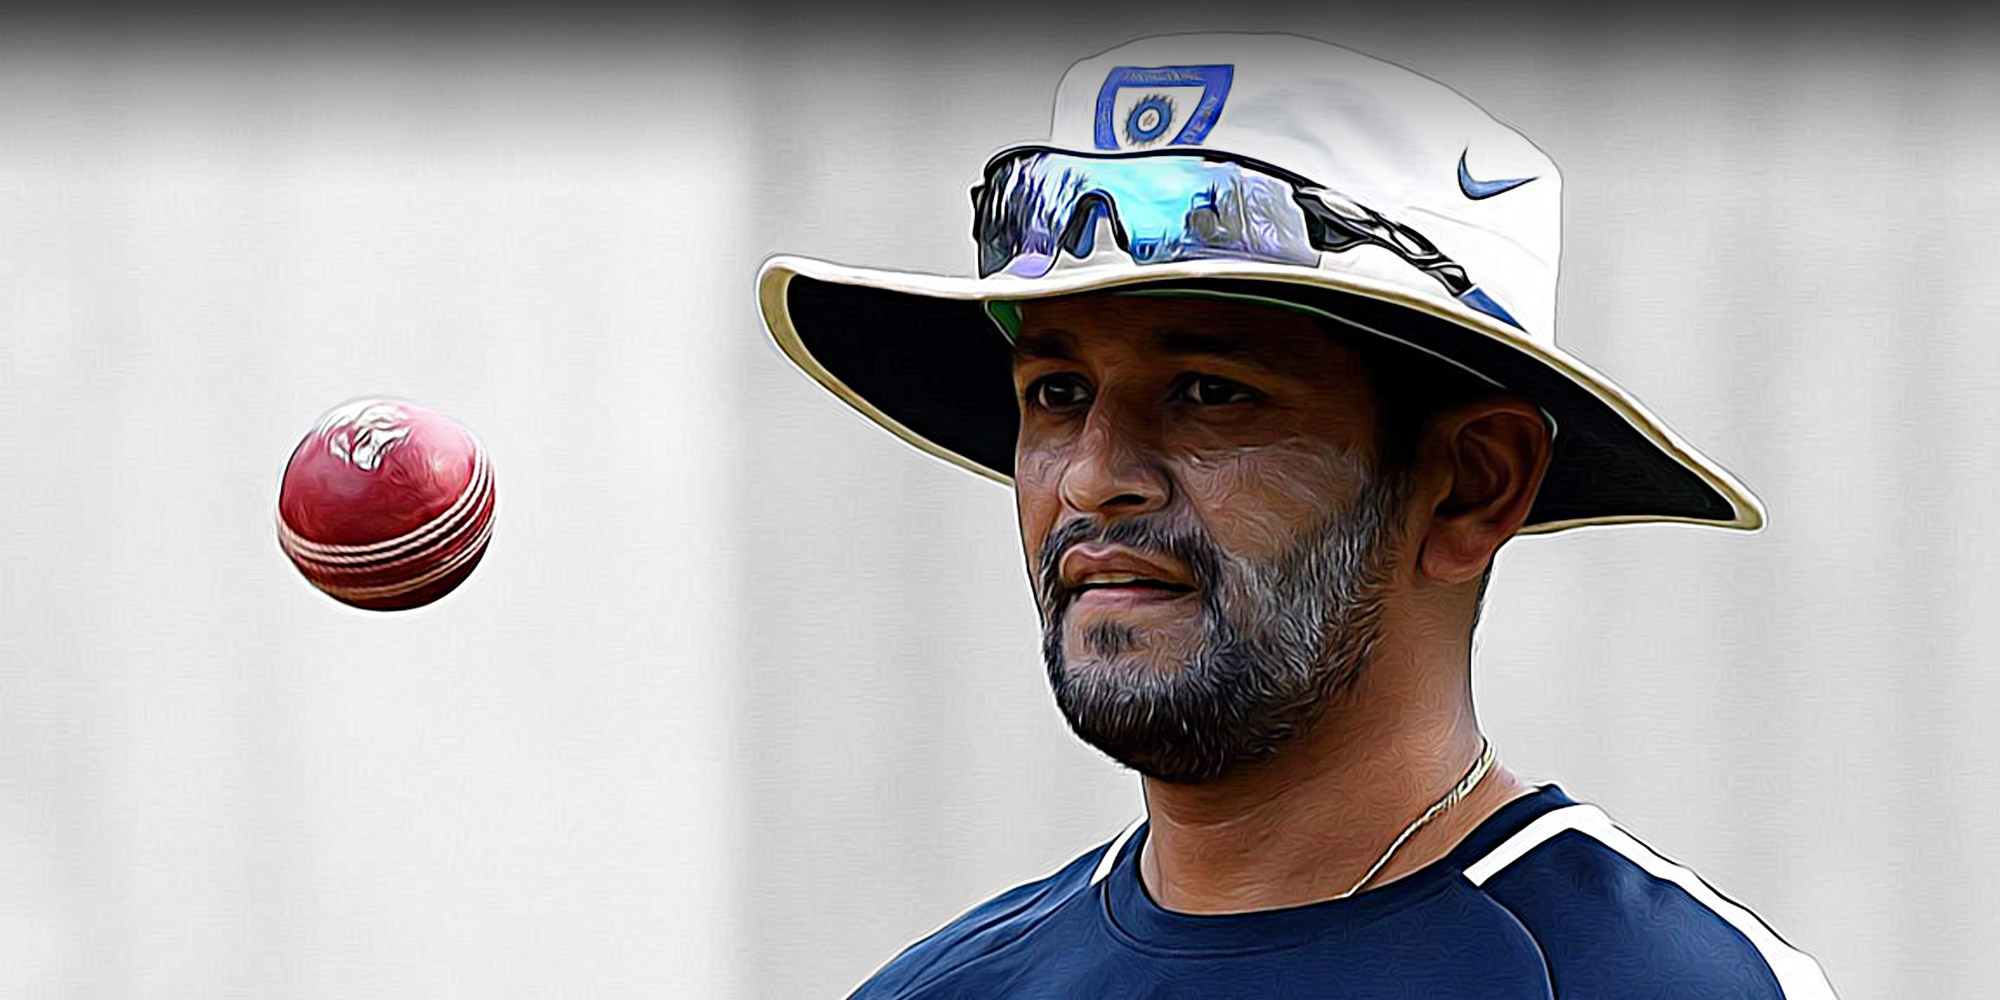 Amol Muzumdar's appointment a shot in the arm in Protea's quest for local knowledge